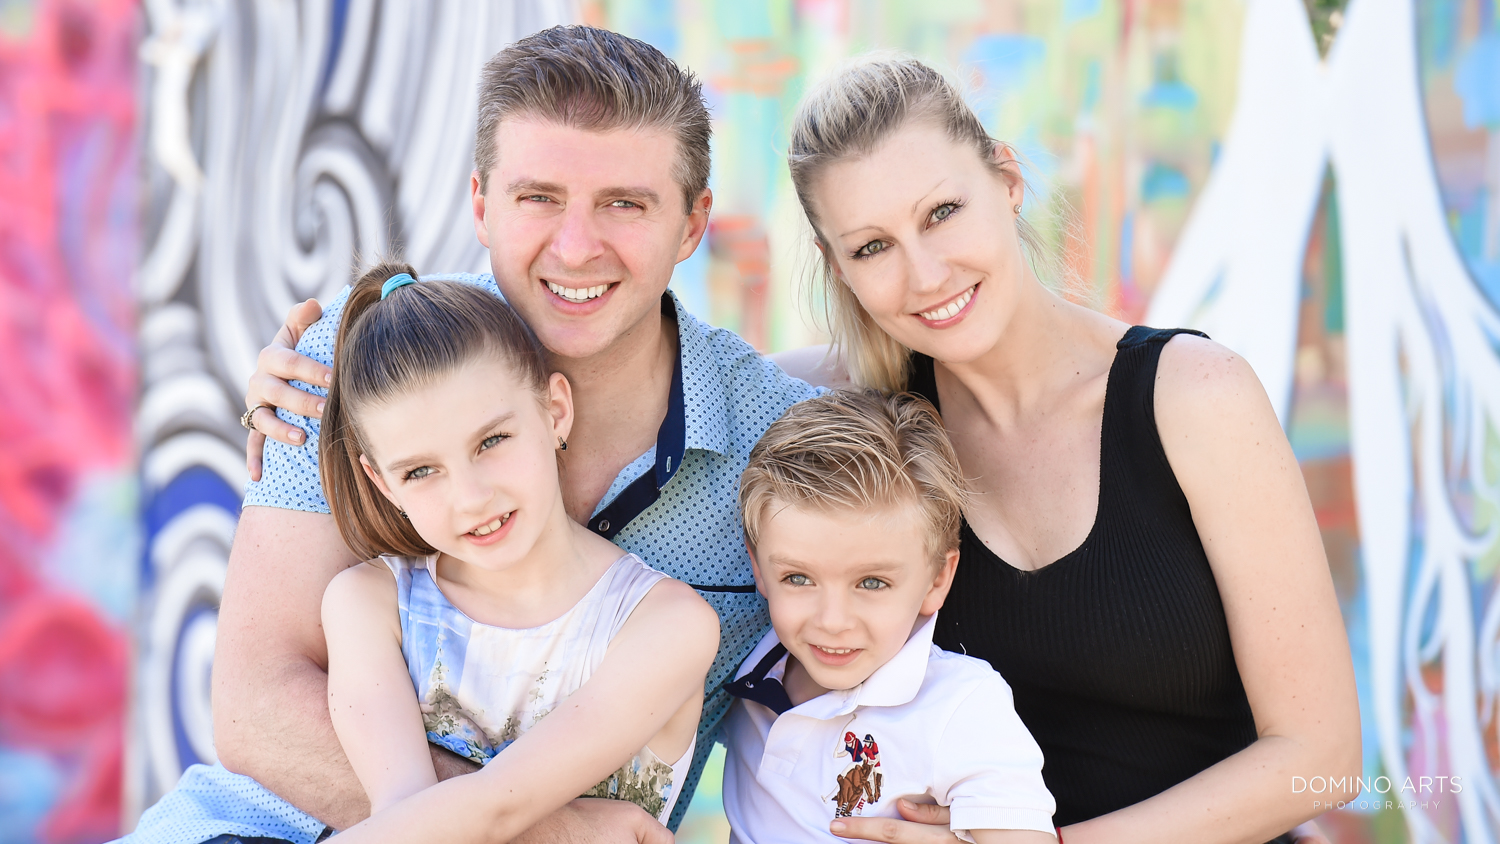 Best Professional family photography in Fort Lauderdale